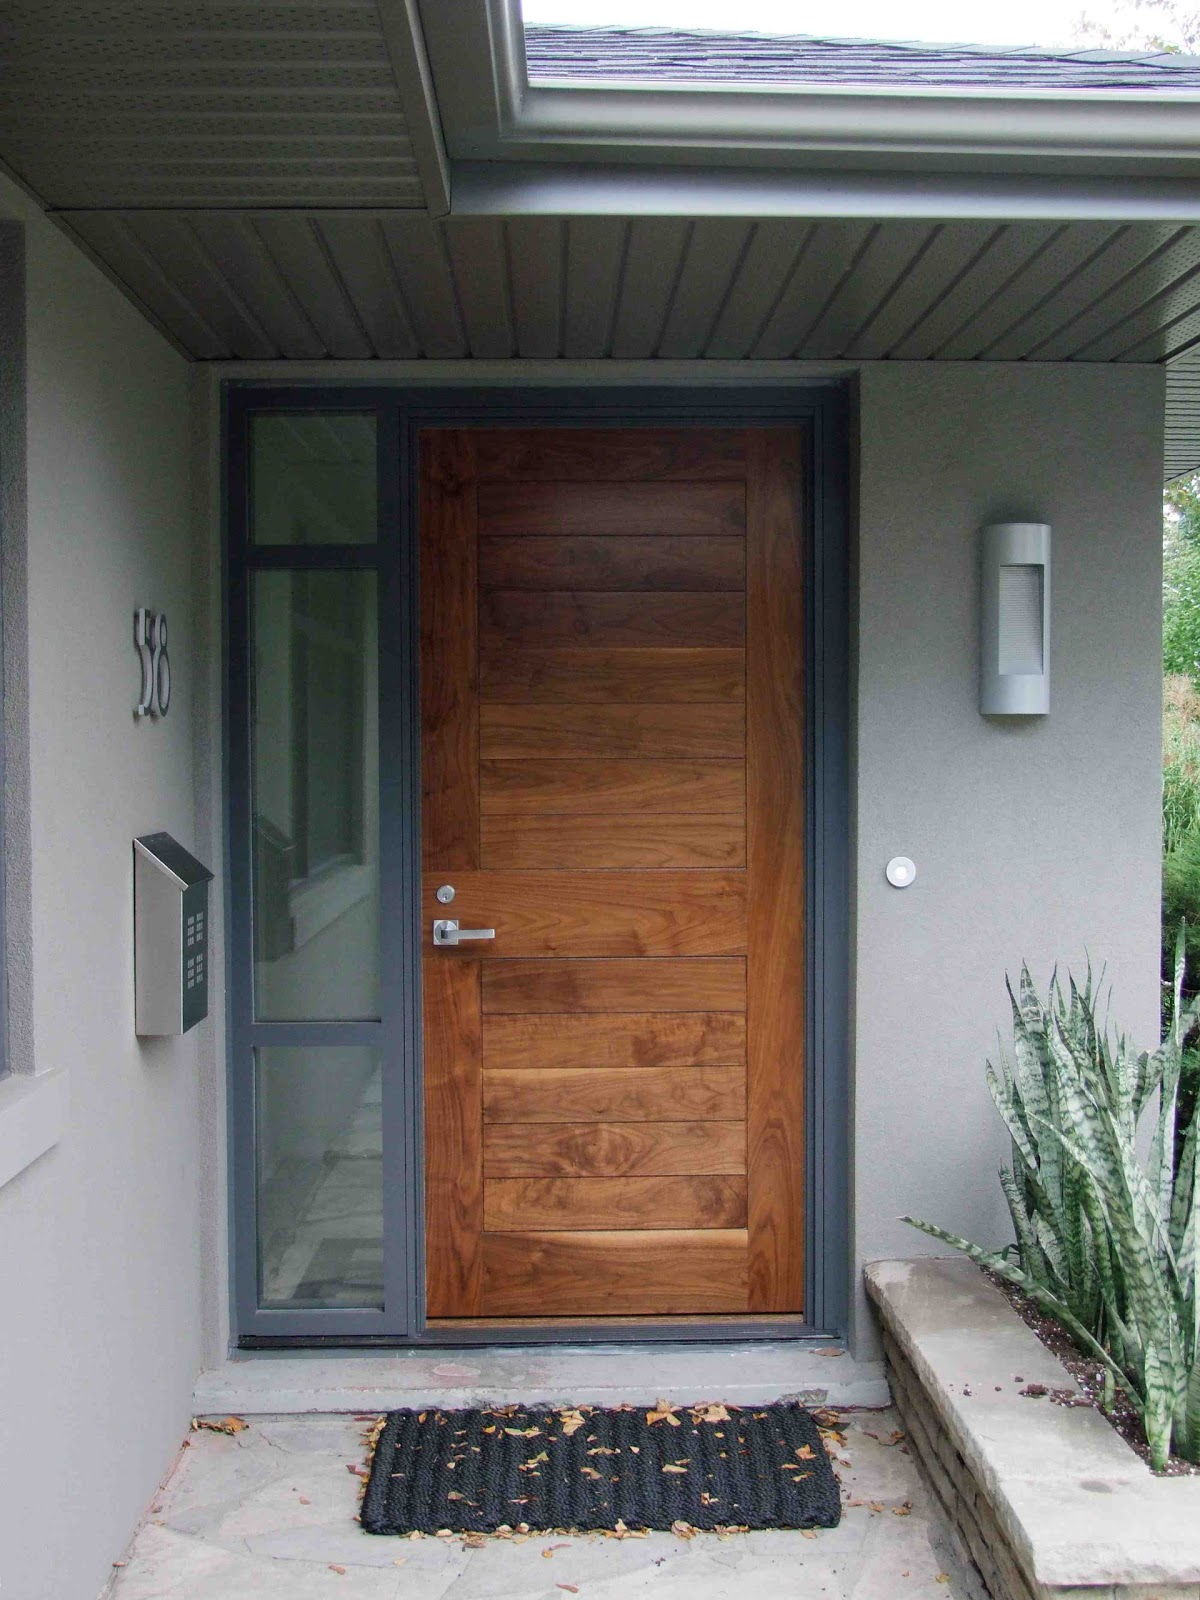 Creed 70 39 s bungalow makes a modern impression for Design my door